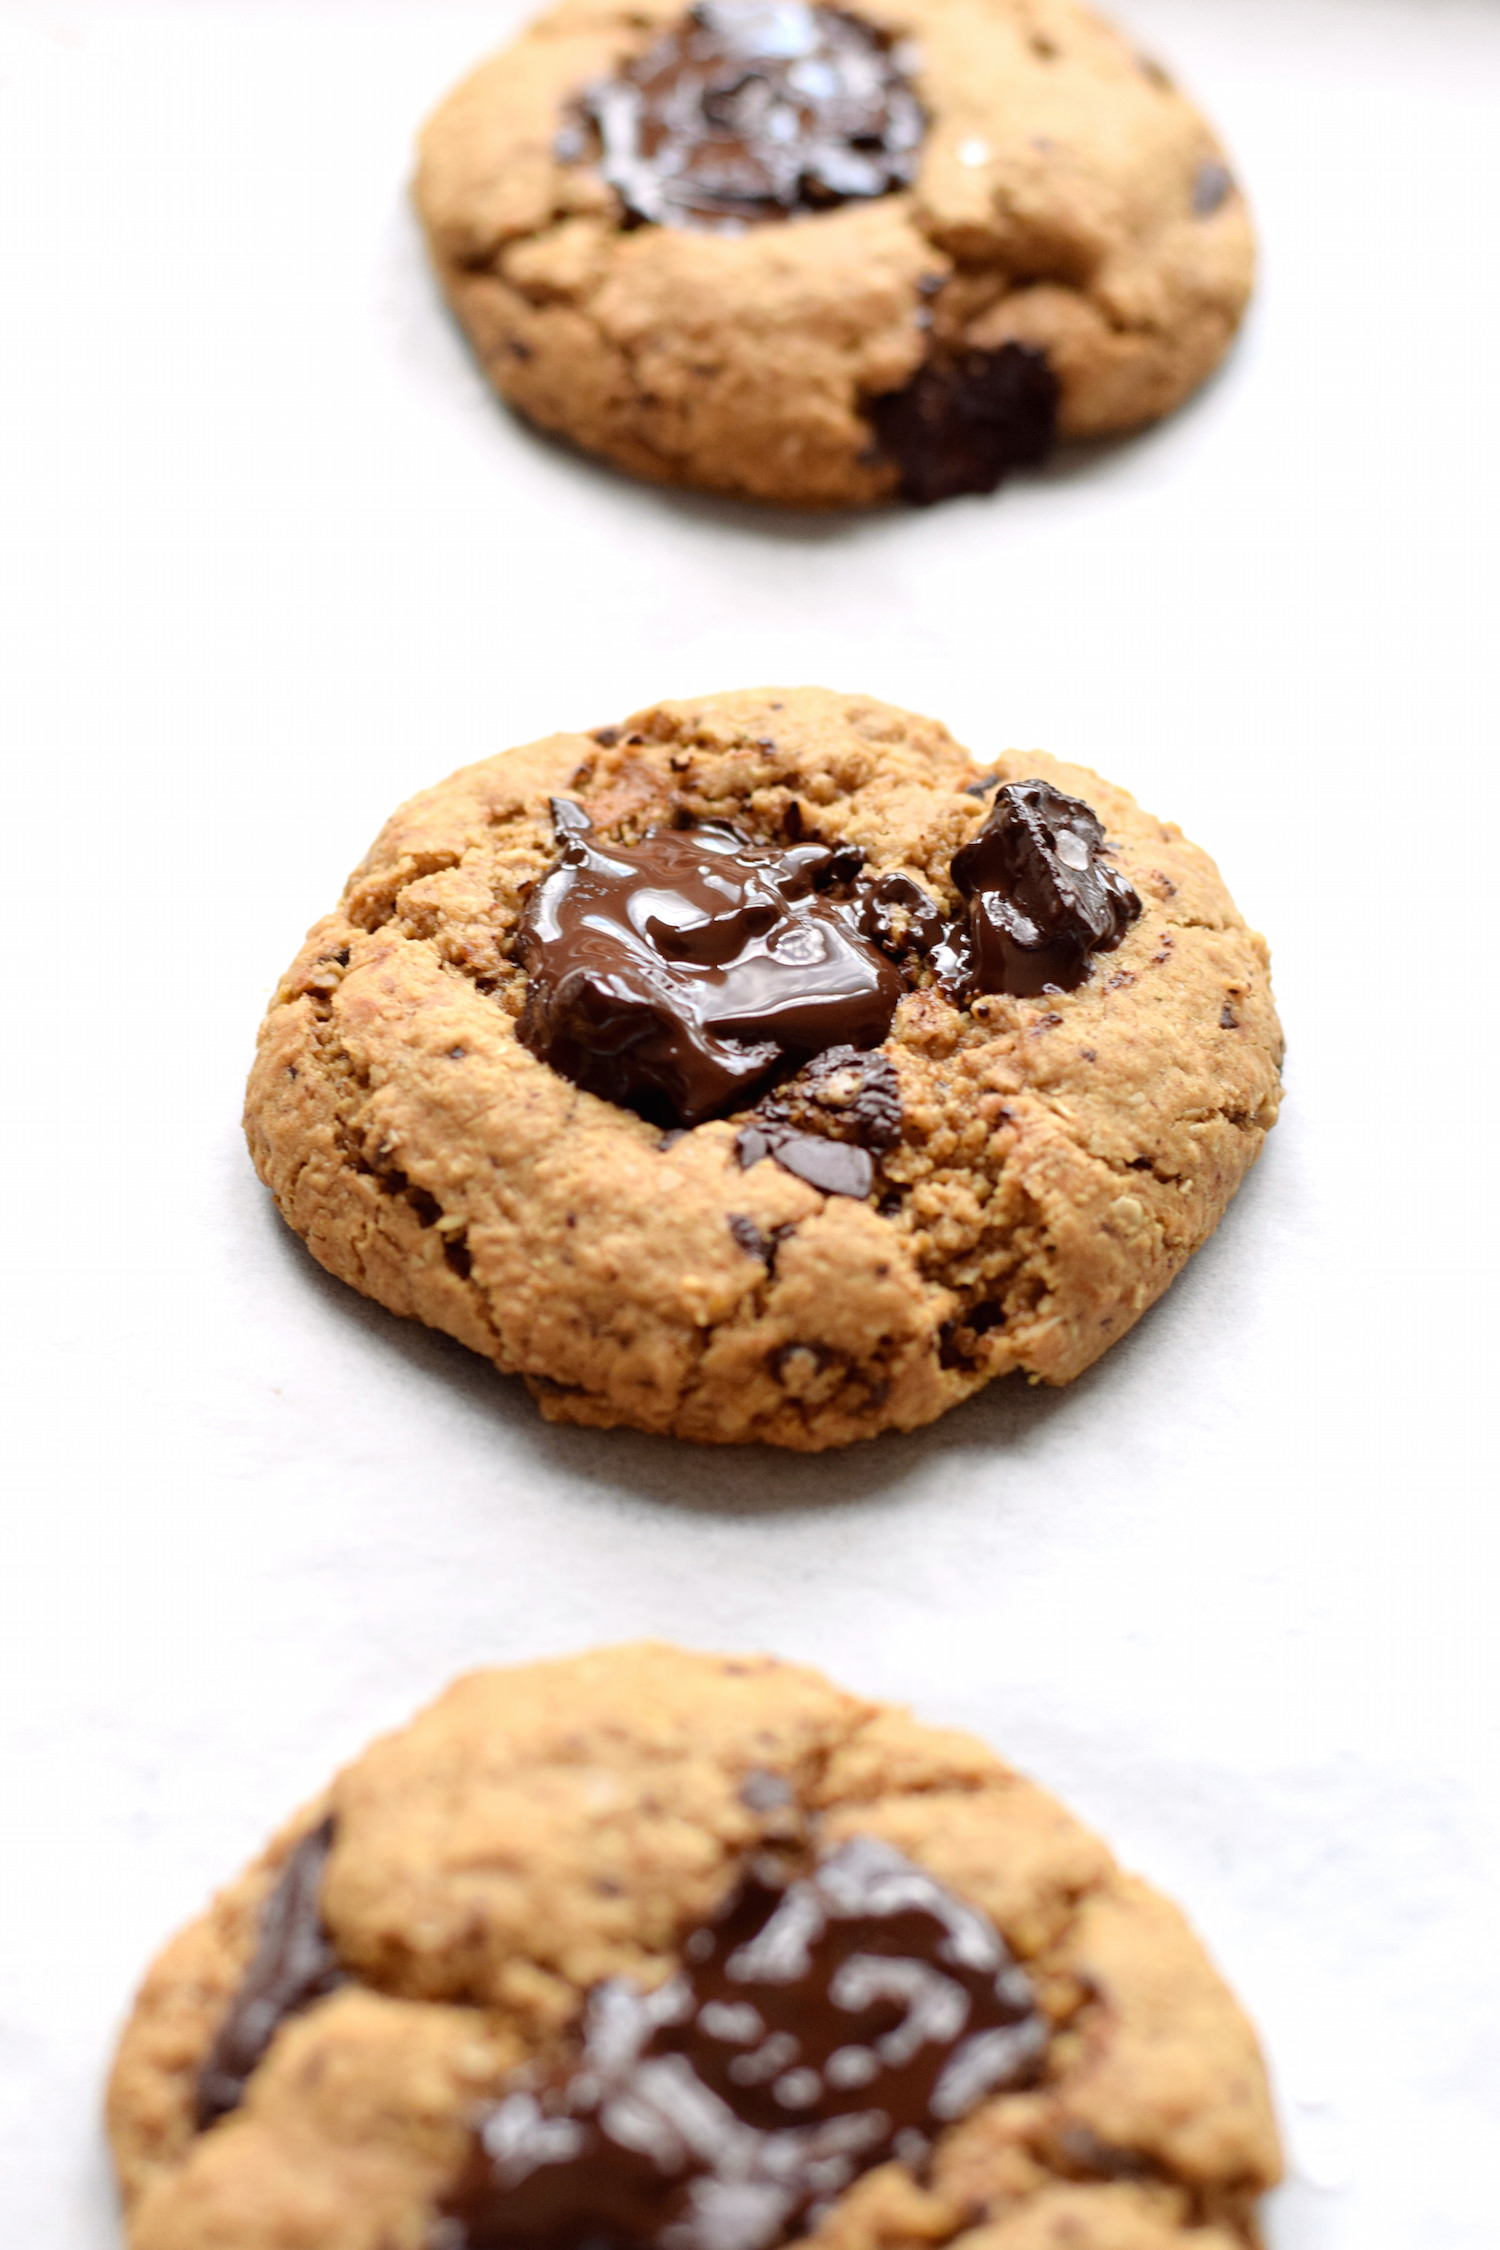 Salt and Pepper Cookies – soft, chewy, gluten-free oatmeal cookies with a slight kick from the salt and pepper. So weird yet so, so good!! | trufflesandtrends.com